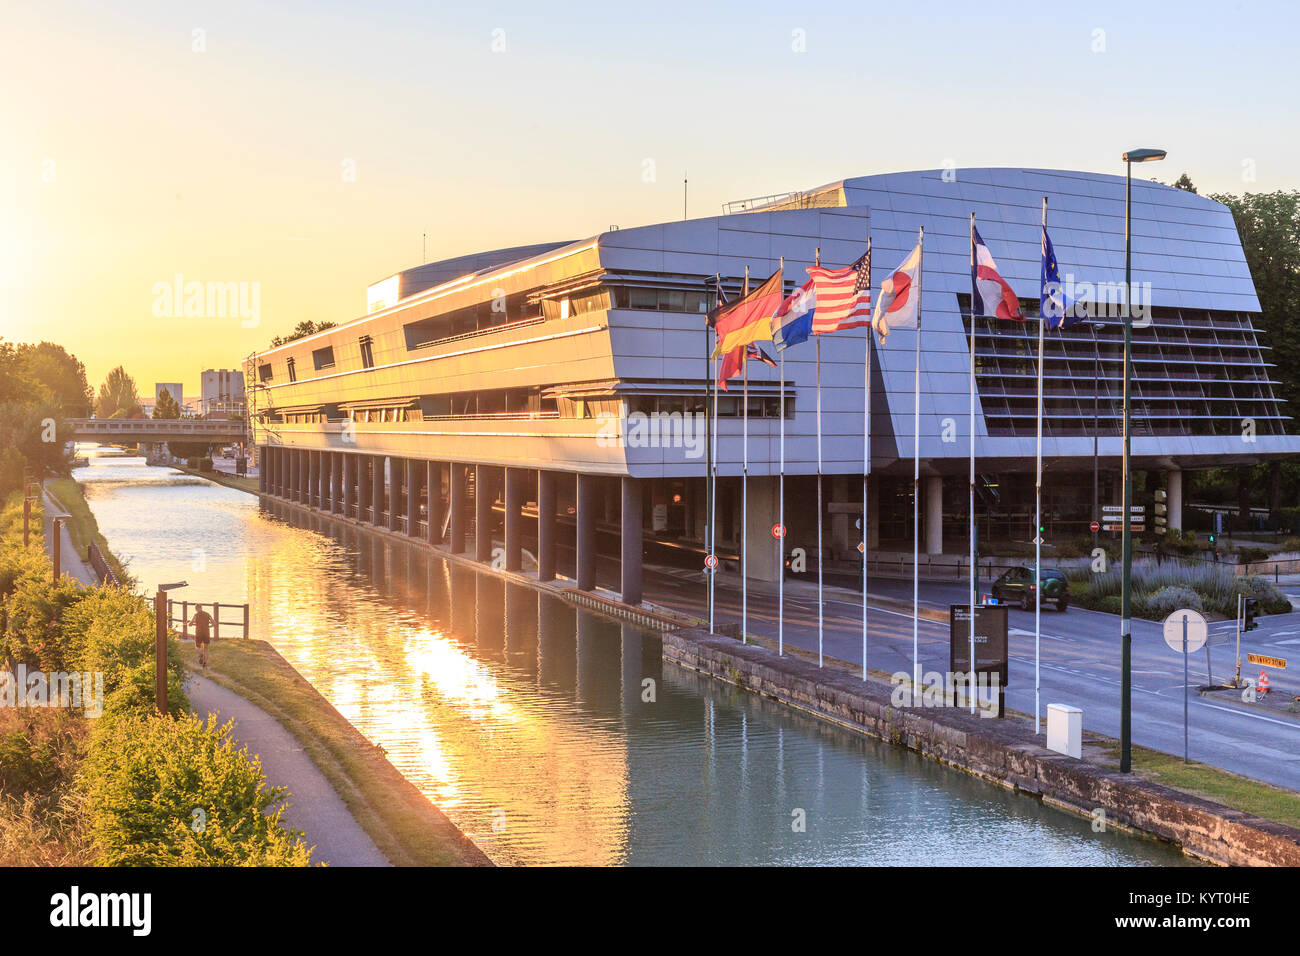 Architecte Aisne Claude Vasconi Photos And Claude Vasconi Images Alamy